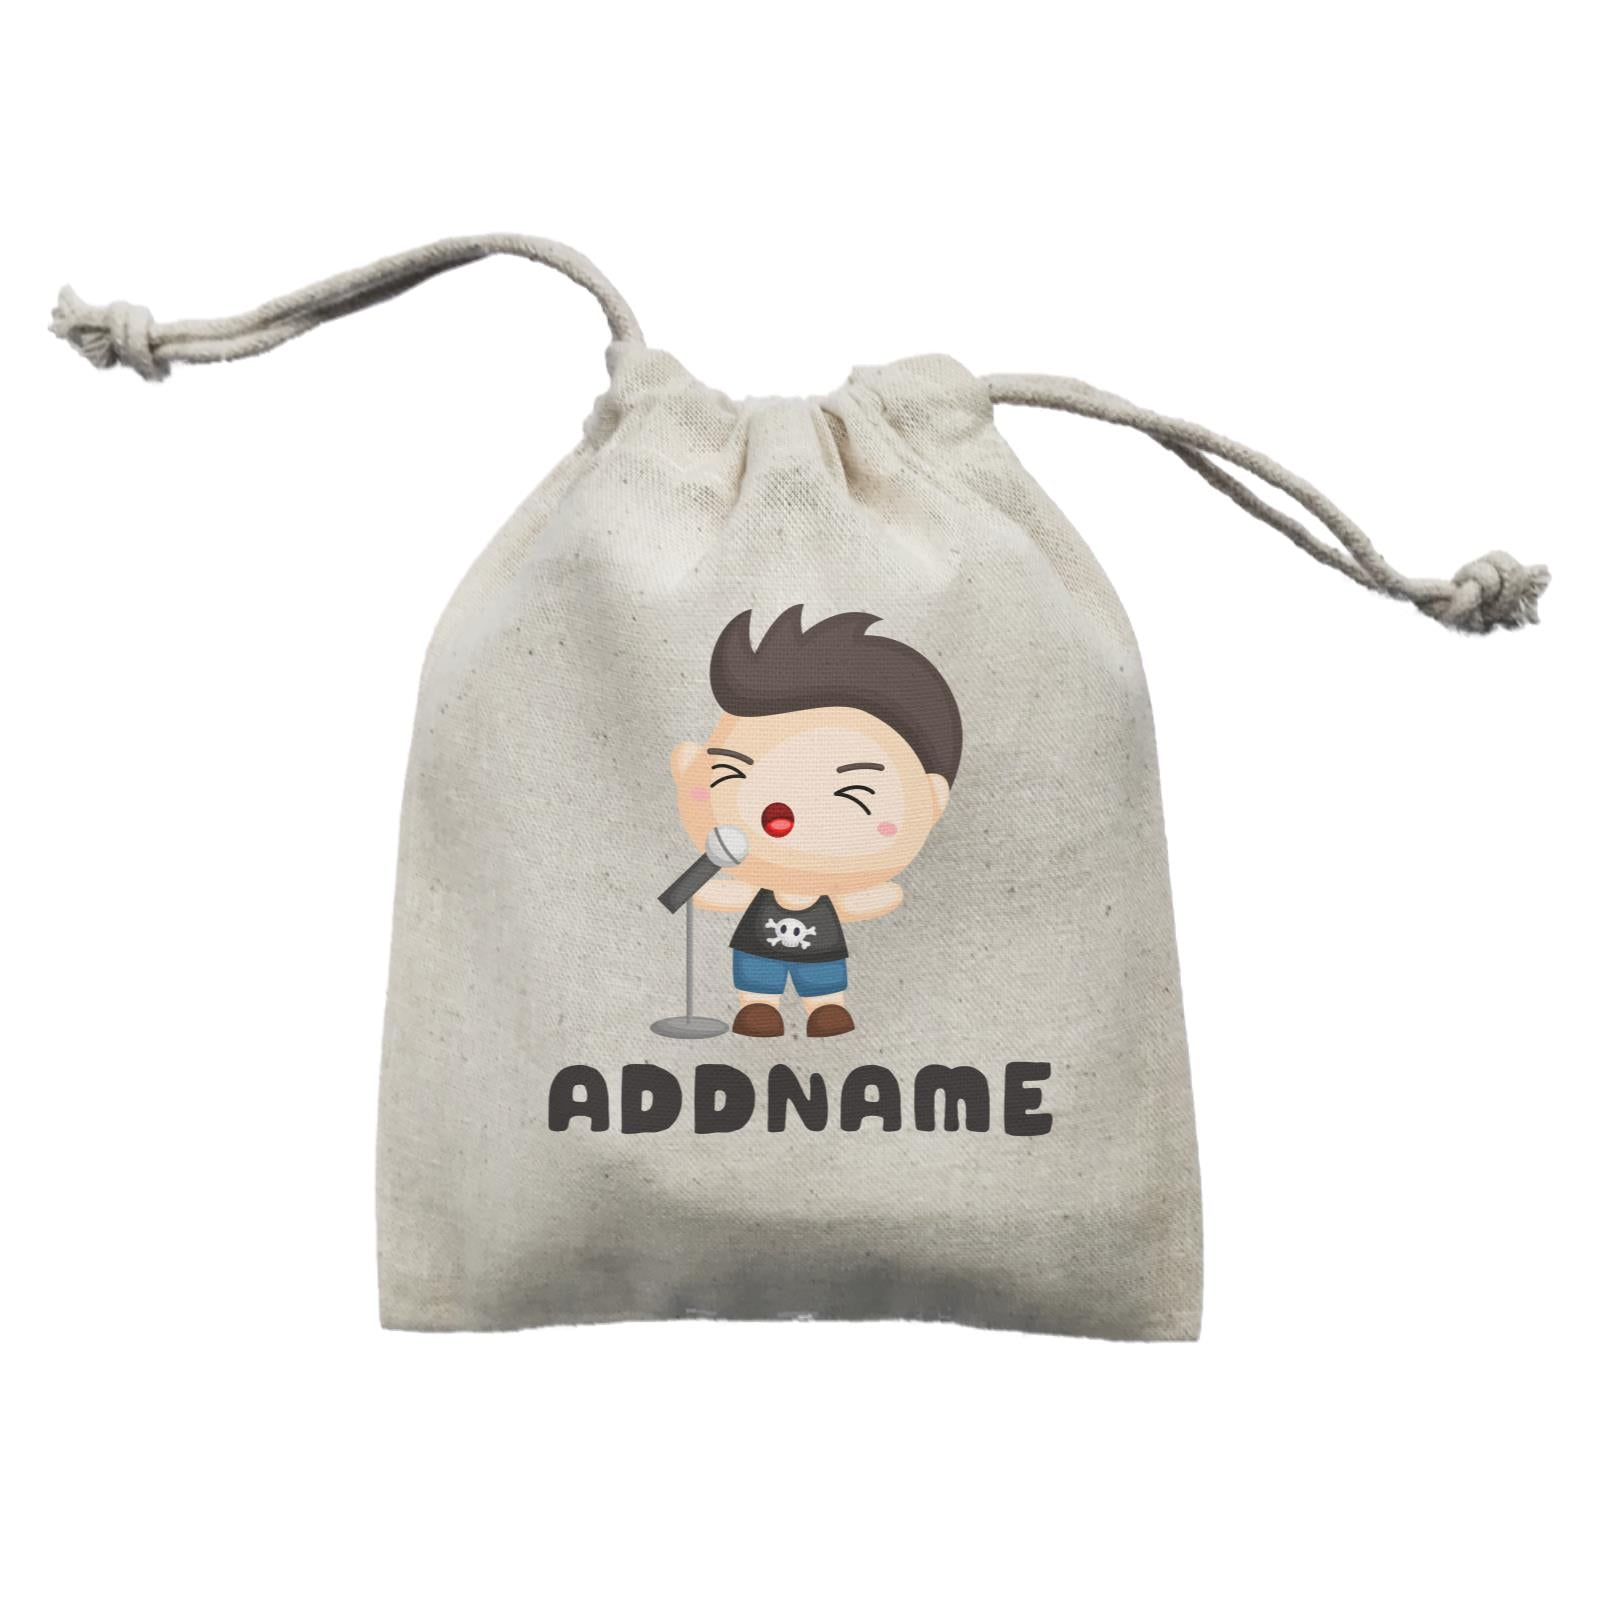 Birthday Music Band Boy Singing Mic Addname Mini Accessories Mini Pouch